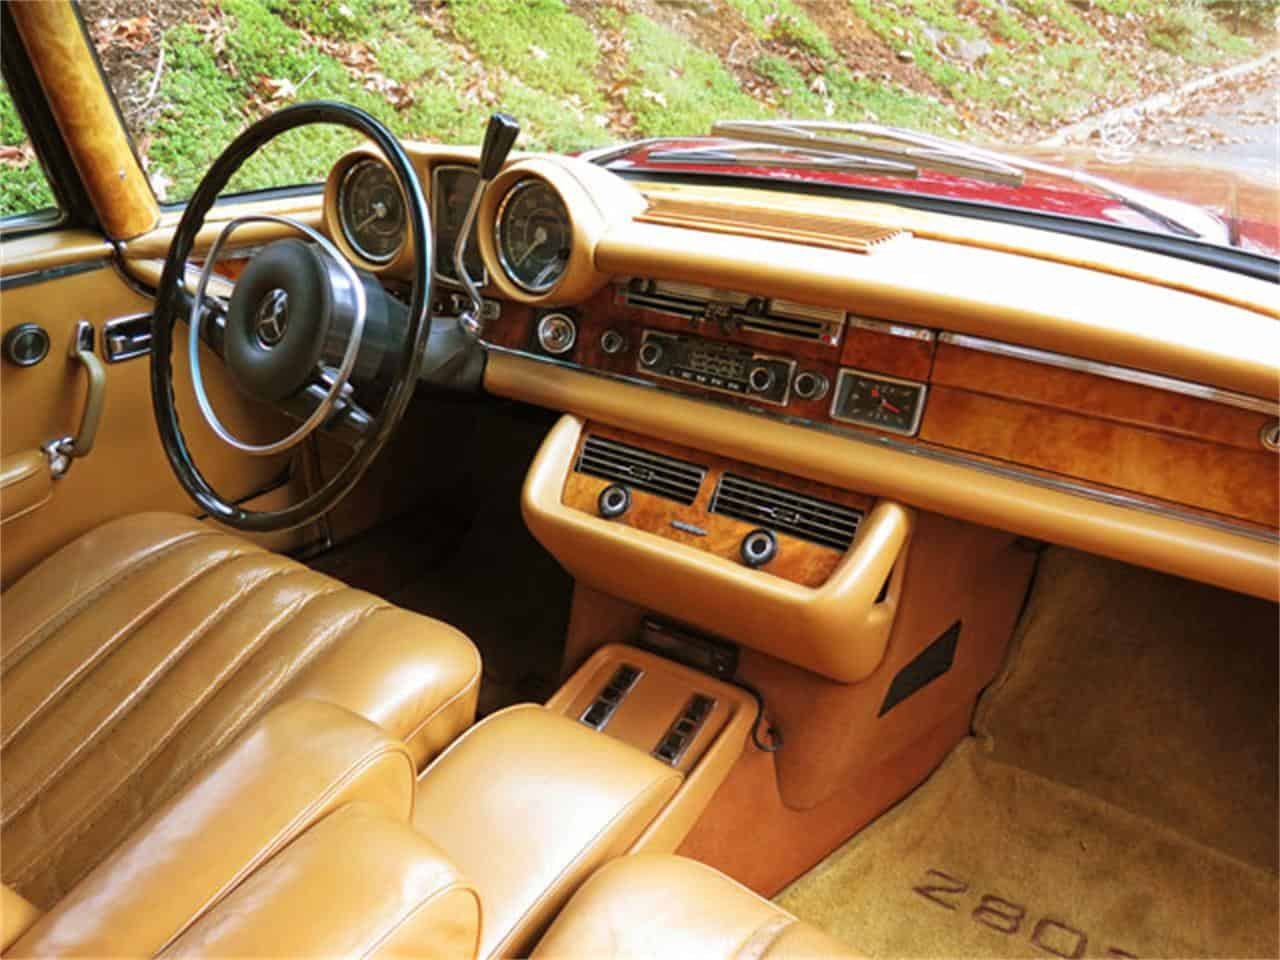 280SE, Pick of the Day: Two-owner 1971 Mercedes-Benz 280SE 3.5 coupe, ClassicCars.com Journal